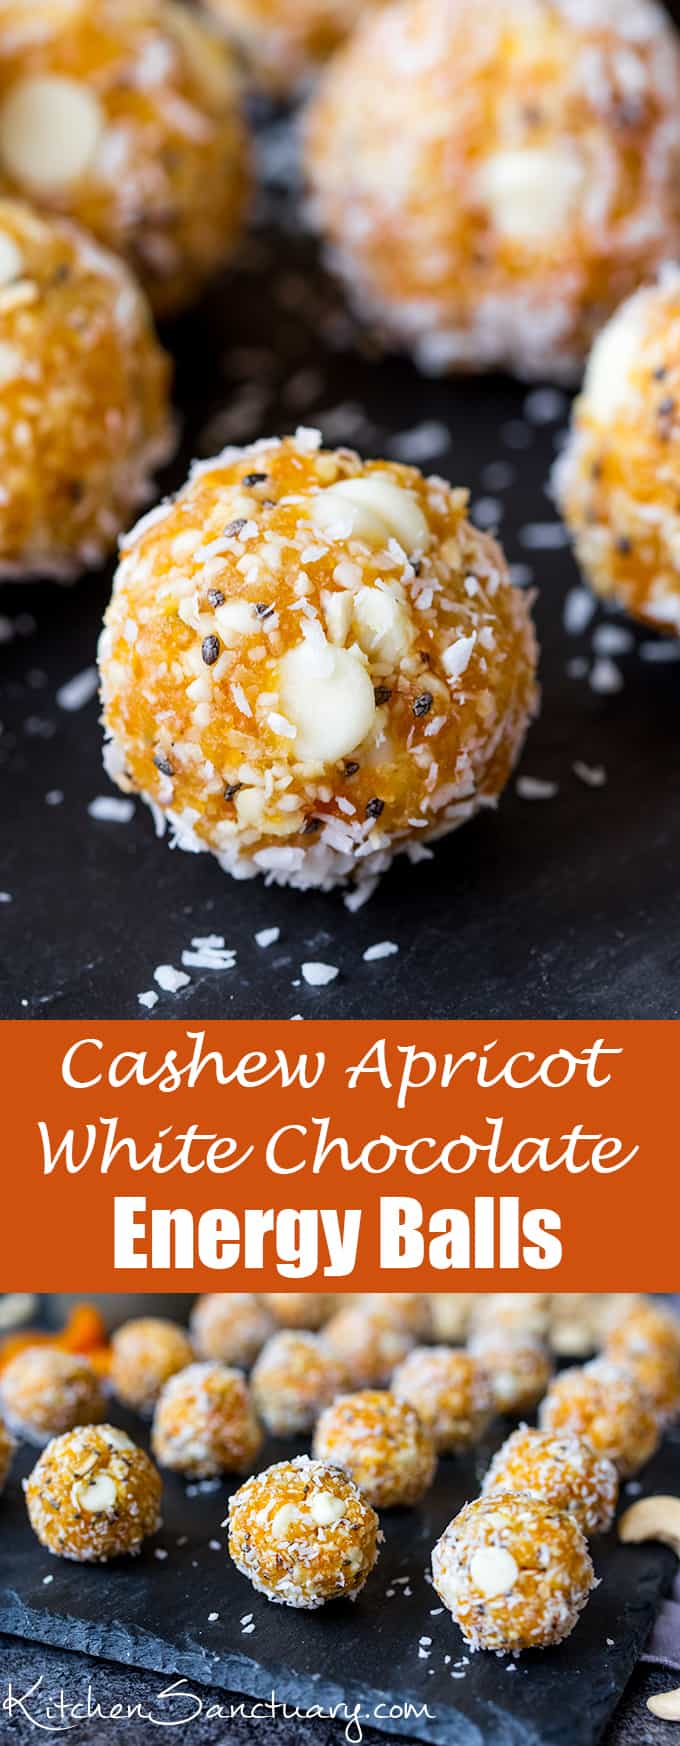 Cashew Apricot White Chocolate Energy Balls - A healthier way to combat that afternoon energy dip!